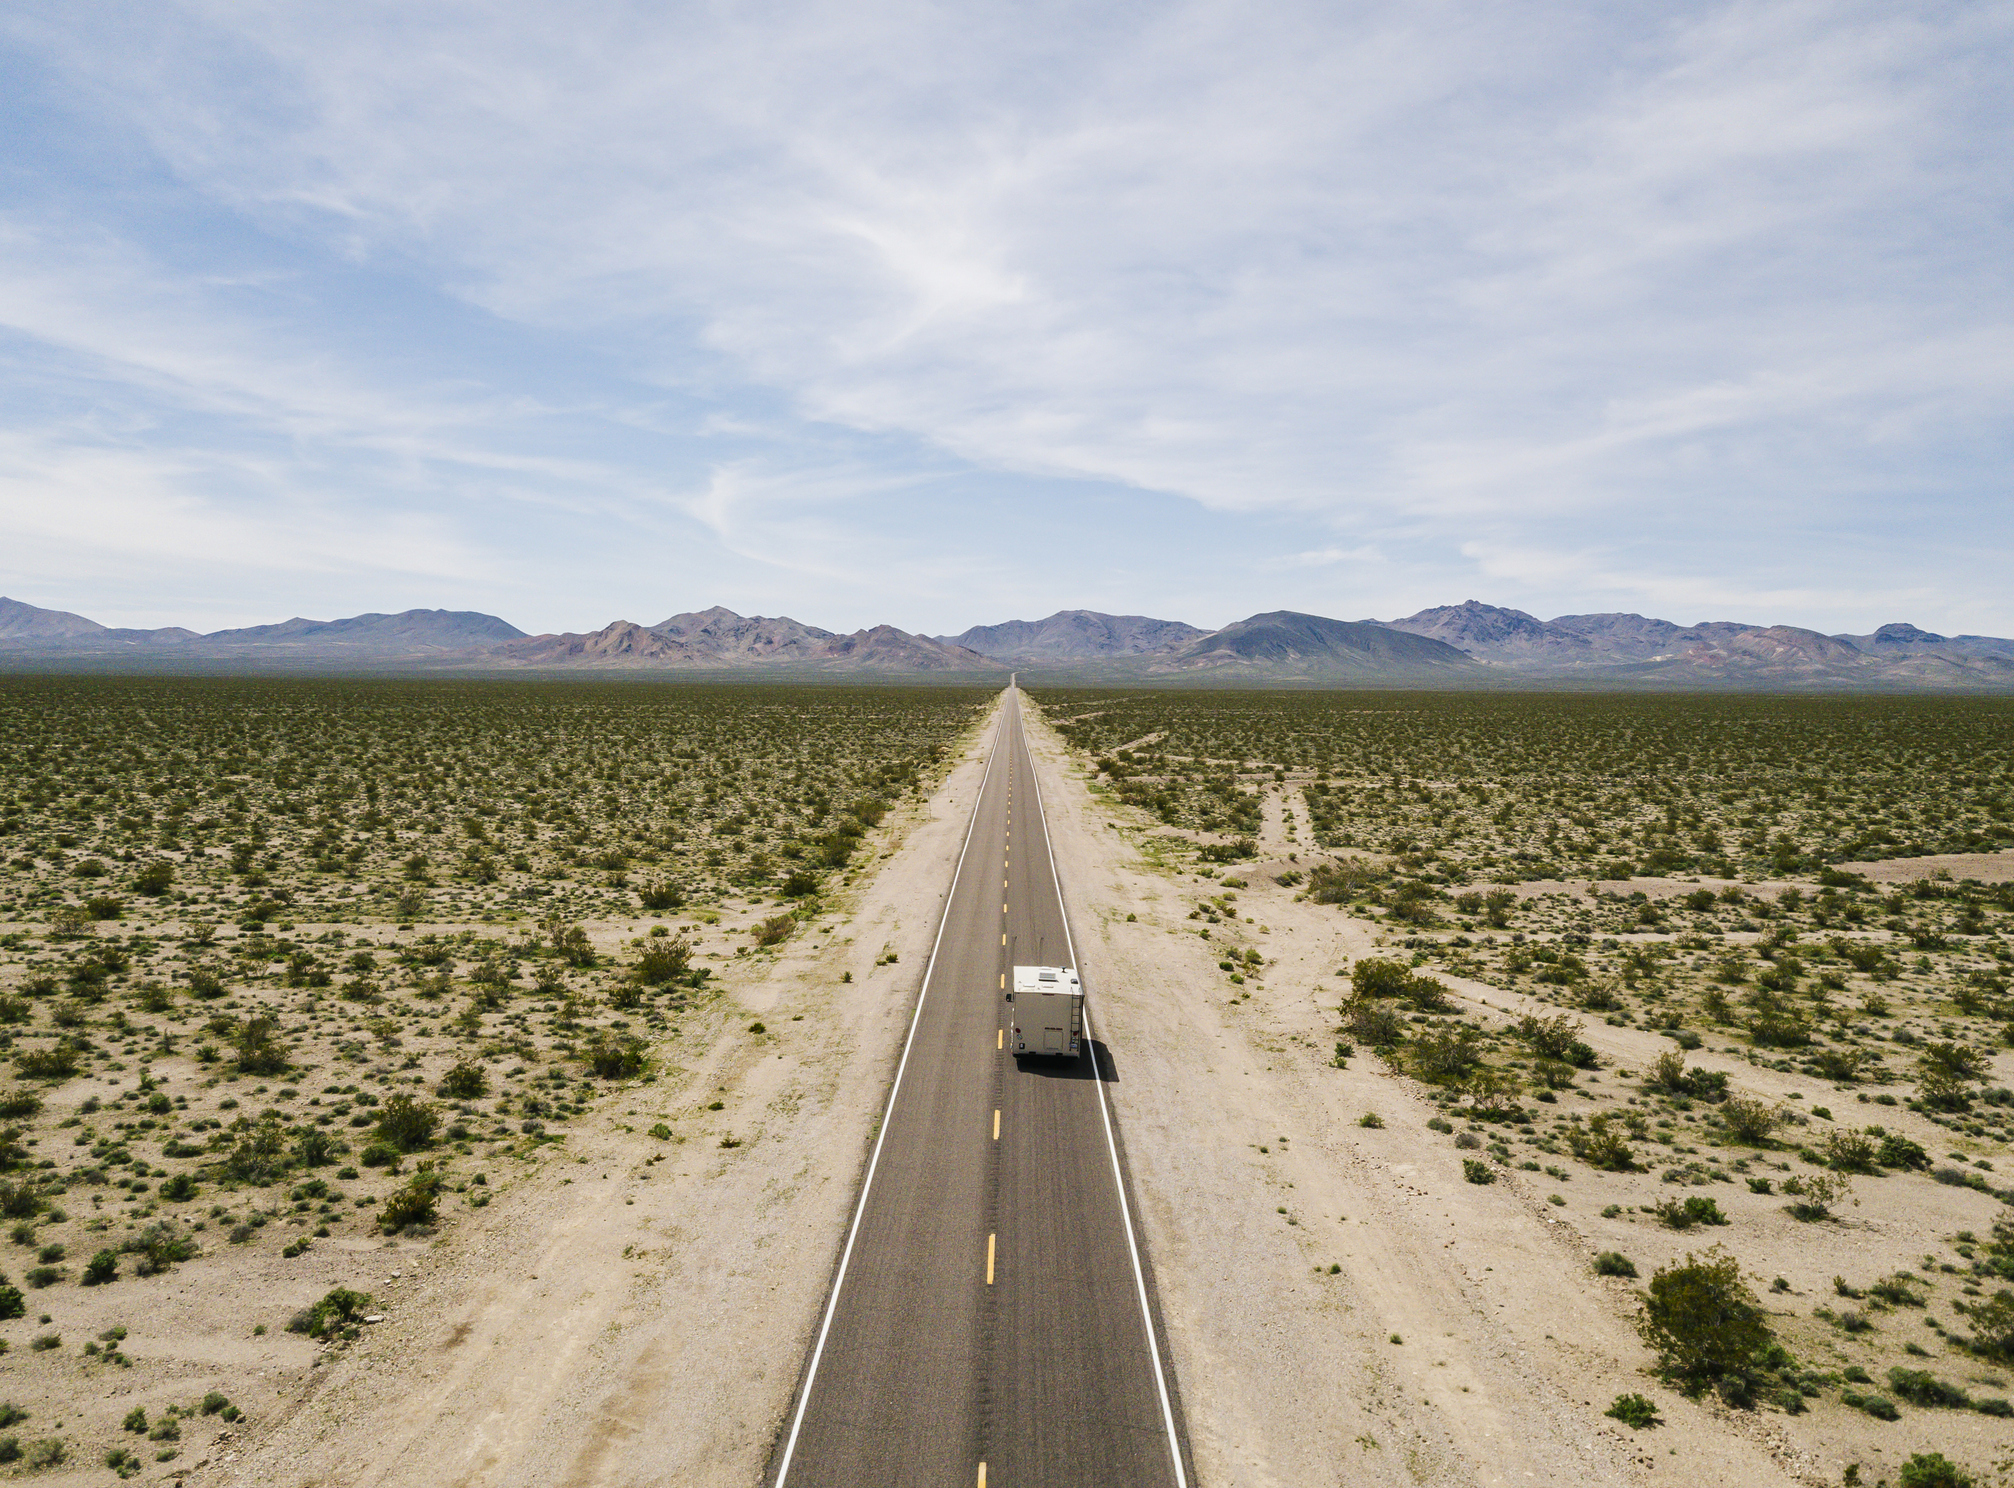 Aerial view of a motorhome driving on a highway in the desert of USA California